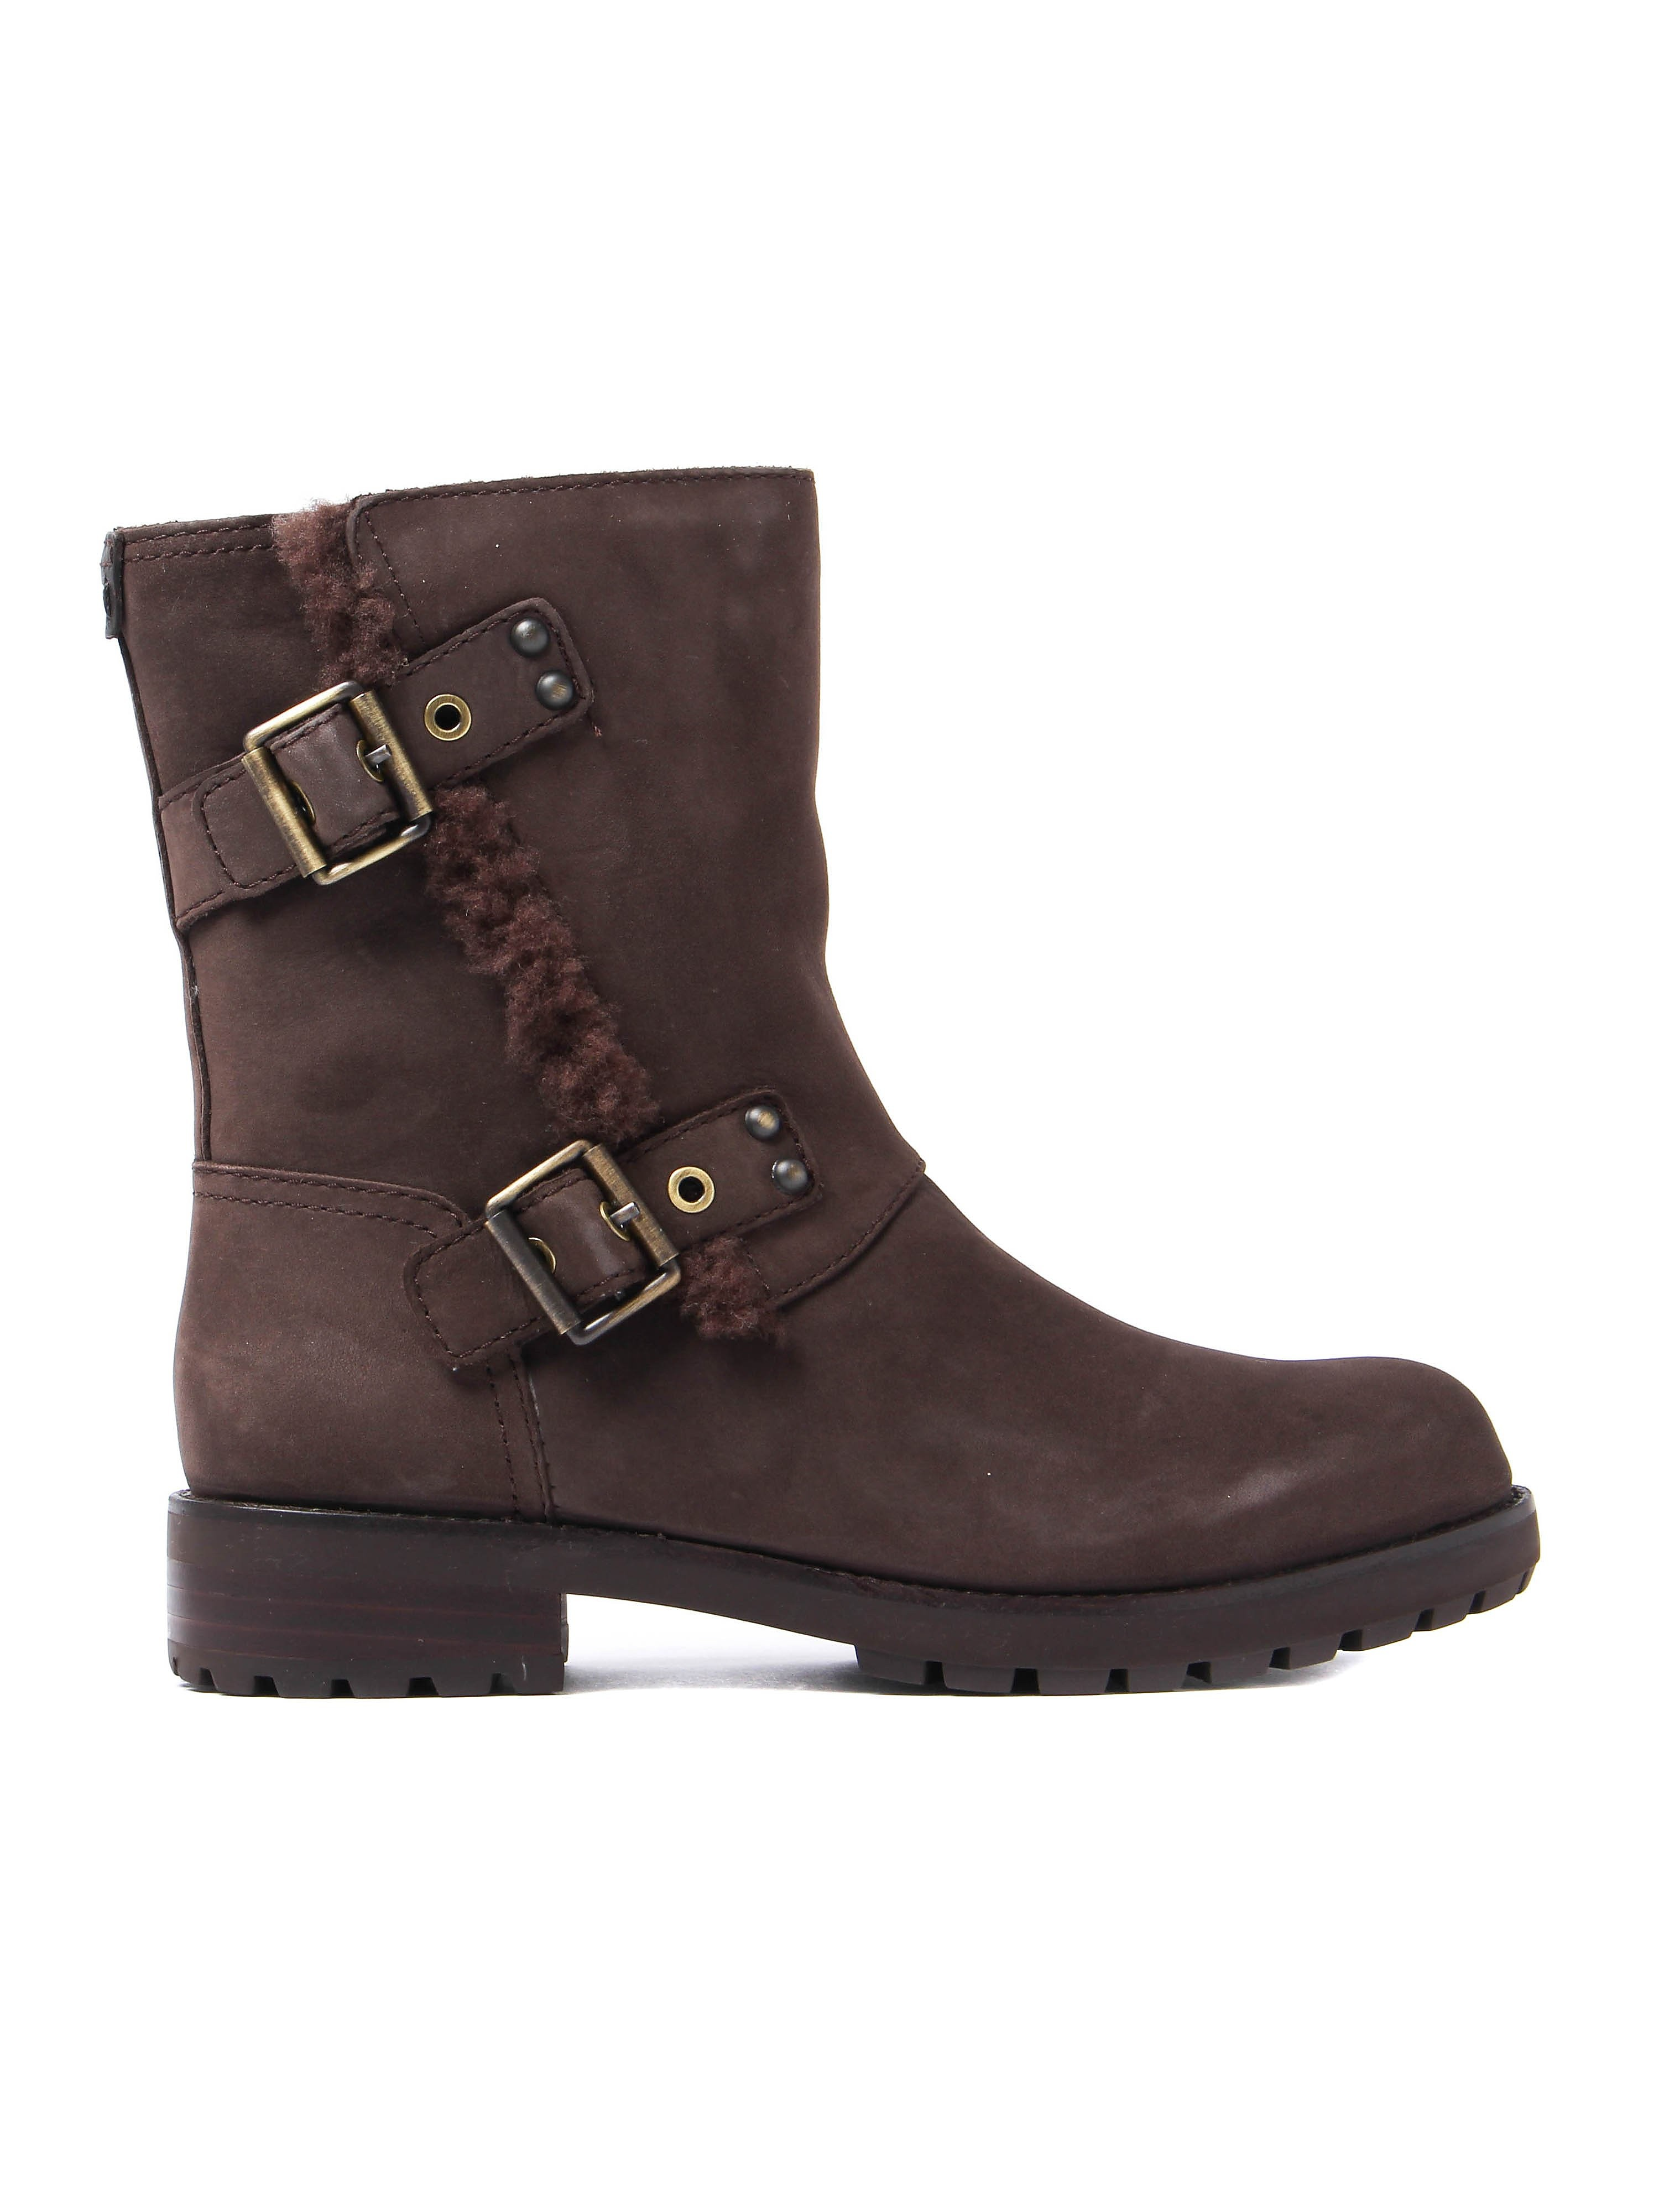 UGG Women's Niels Boots - Stout